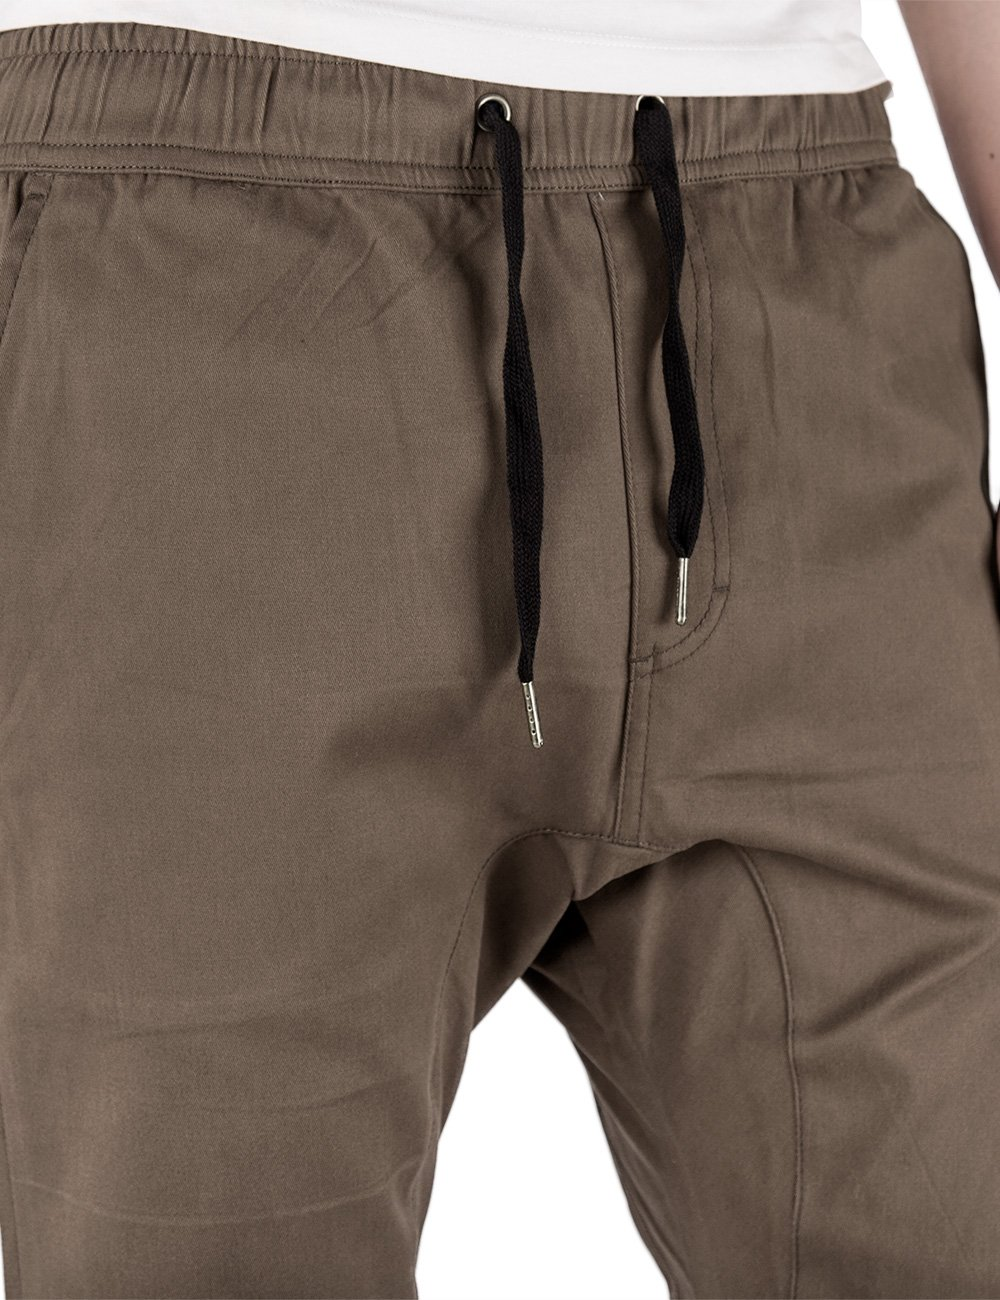 ITALY MORN Men's Chino Jogger Pants XL Coffee by ITALY MORN (Image #5)